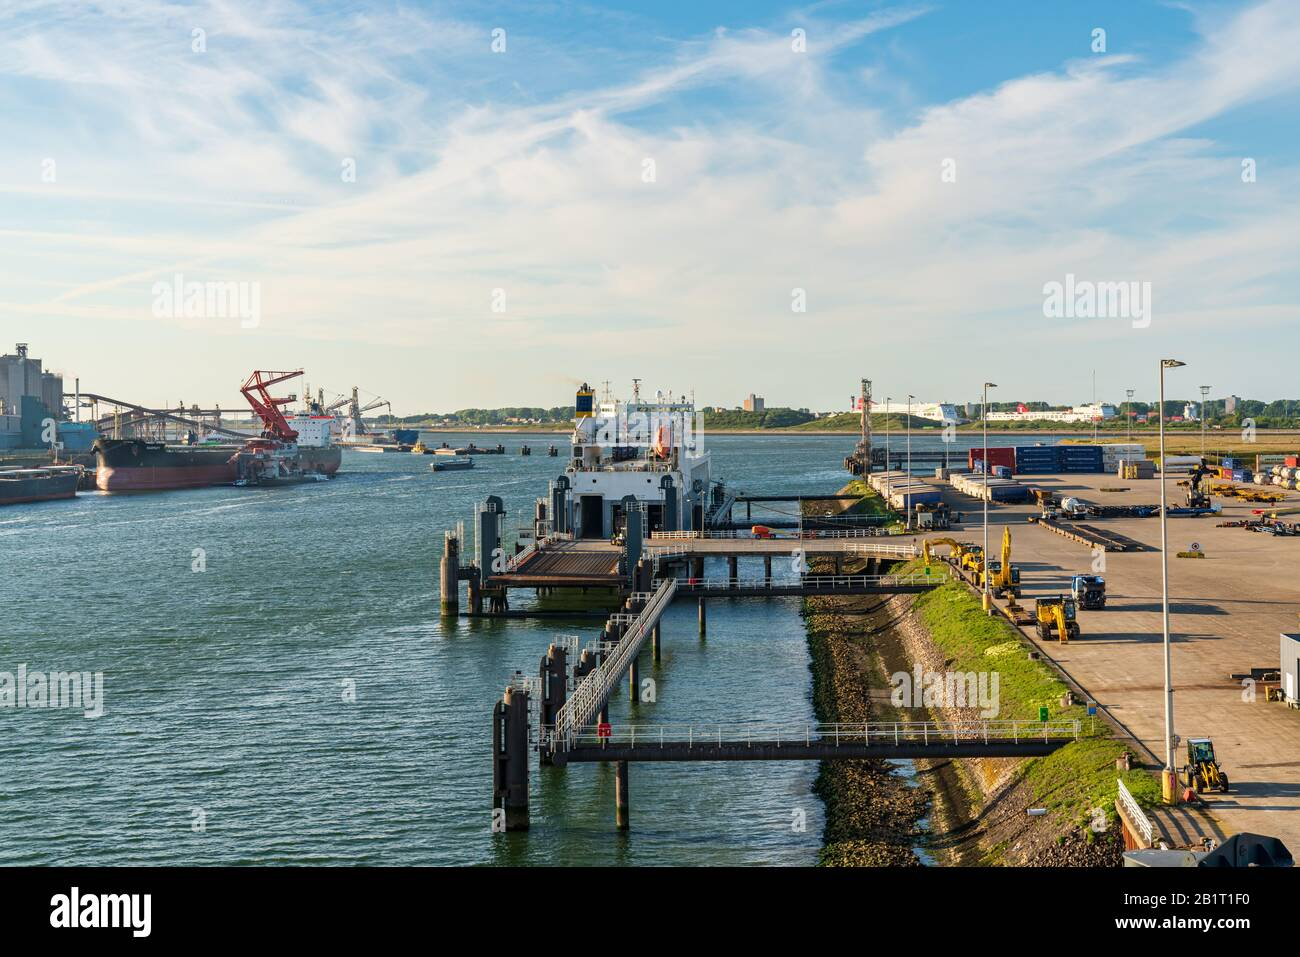 Rotterdam, South Holland, Netherlands - May 13, 2019: Ships and industry in the Beneluxhaven of Europoort Stock Photo